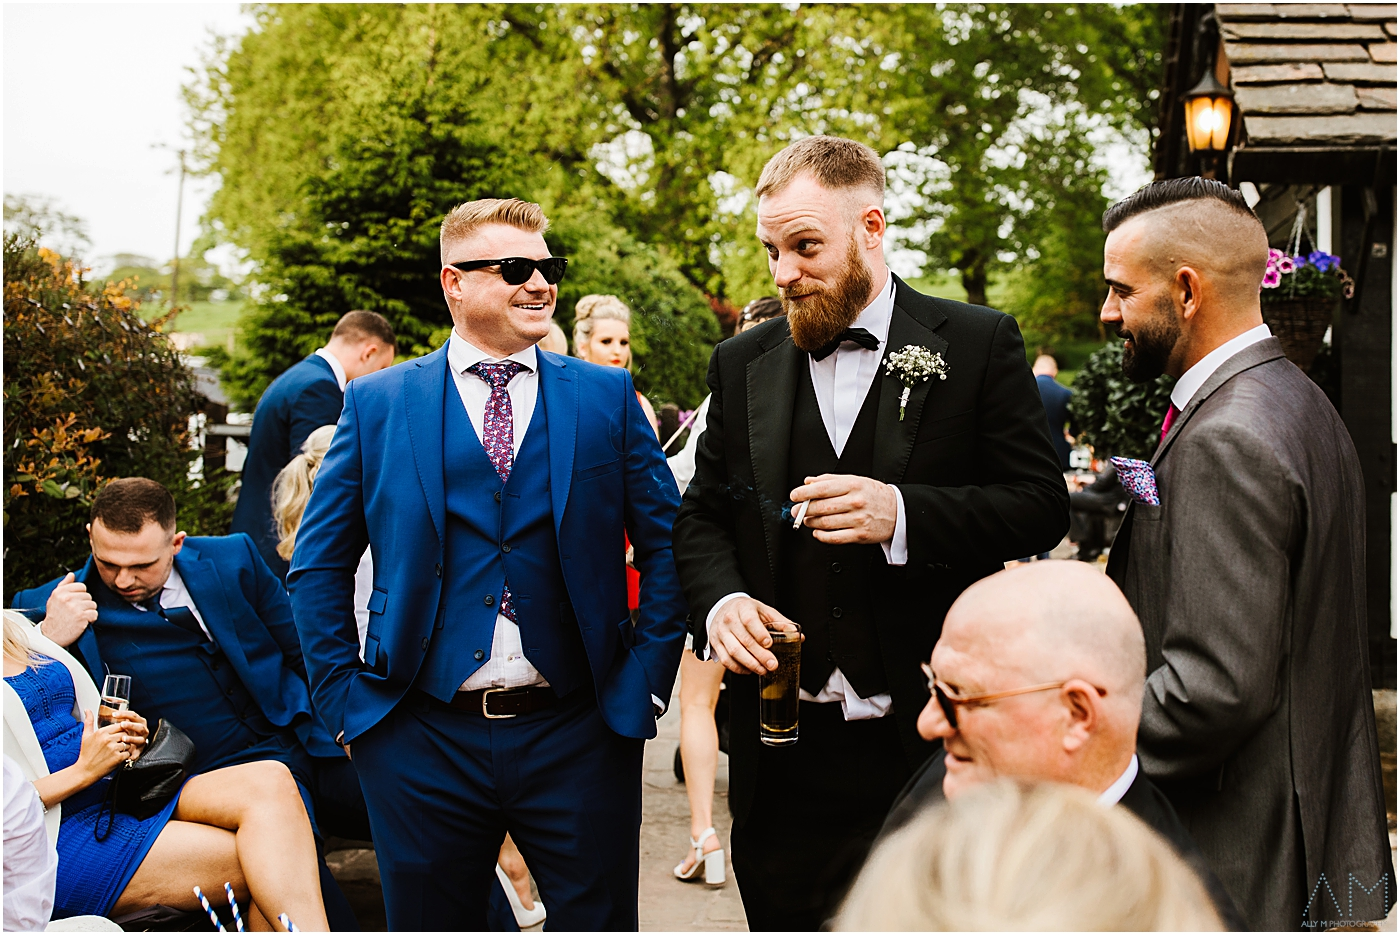 Best man laughing with wedding guests